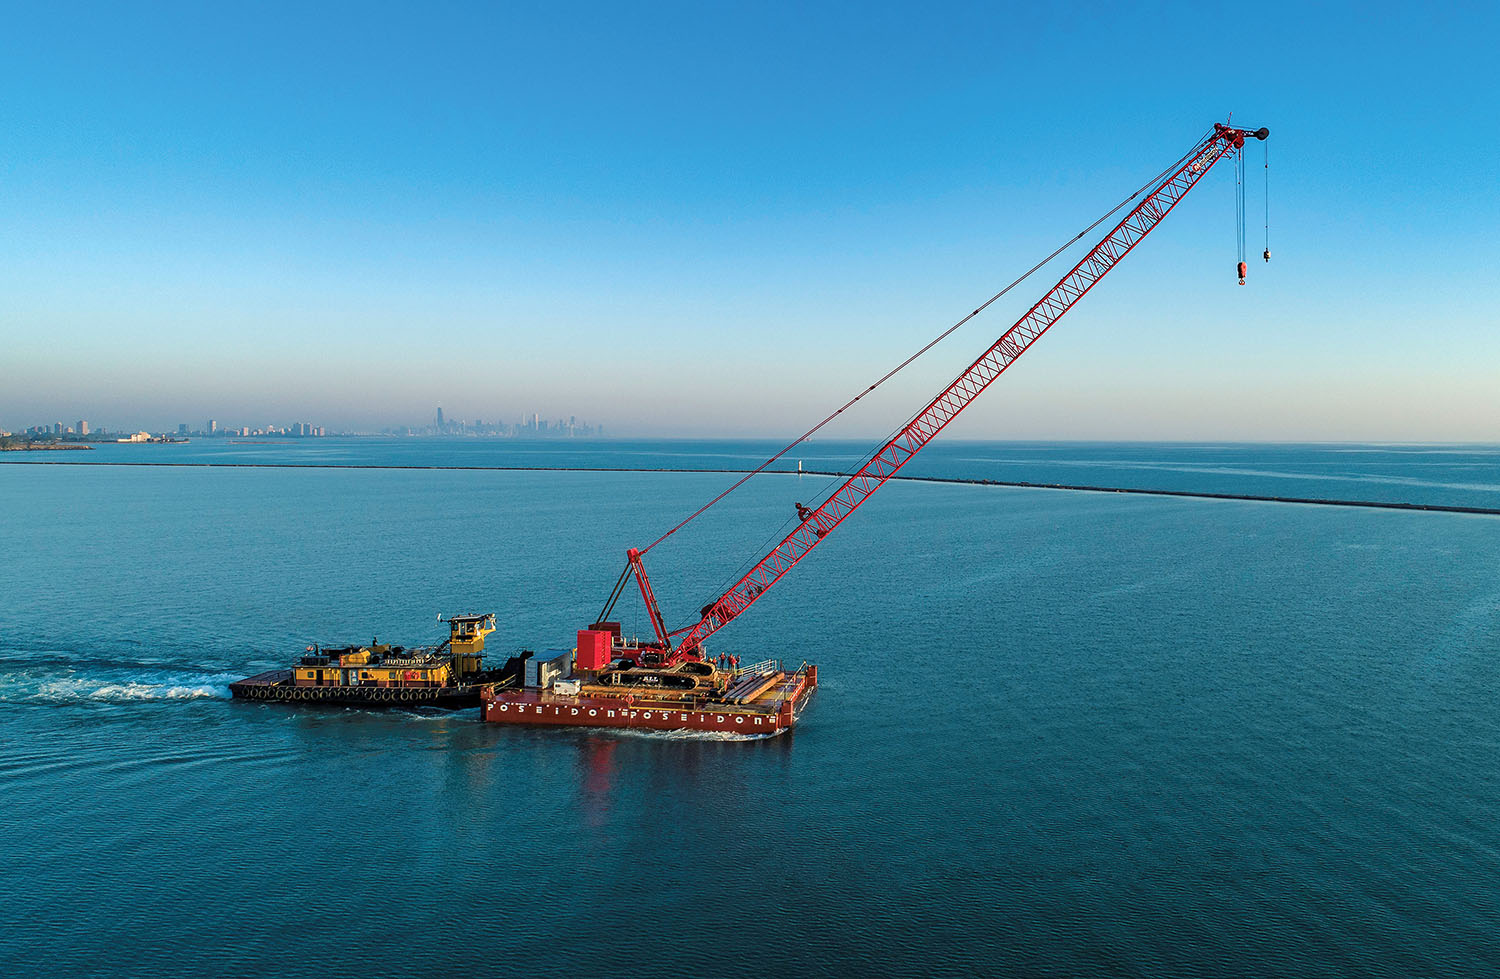 Kindra Lake Towing moved a 300-ton crawler crane from the Calumet Harbor to Chicago Harbor via Lake Michigan on September 15. (Photo courtesy of Jeff Ellis)